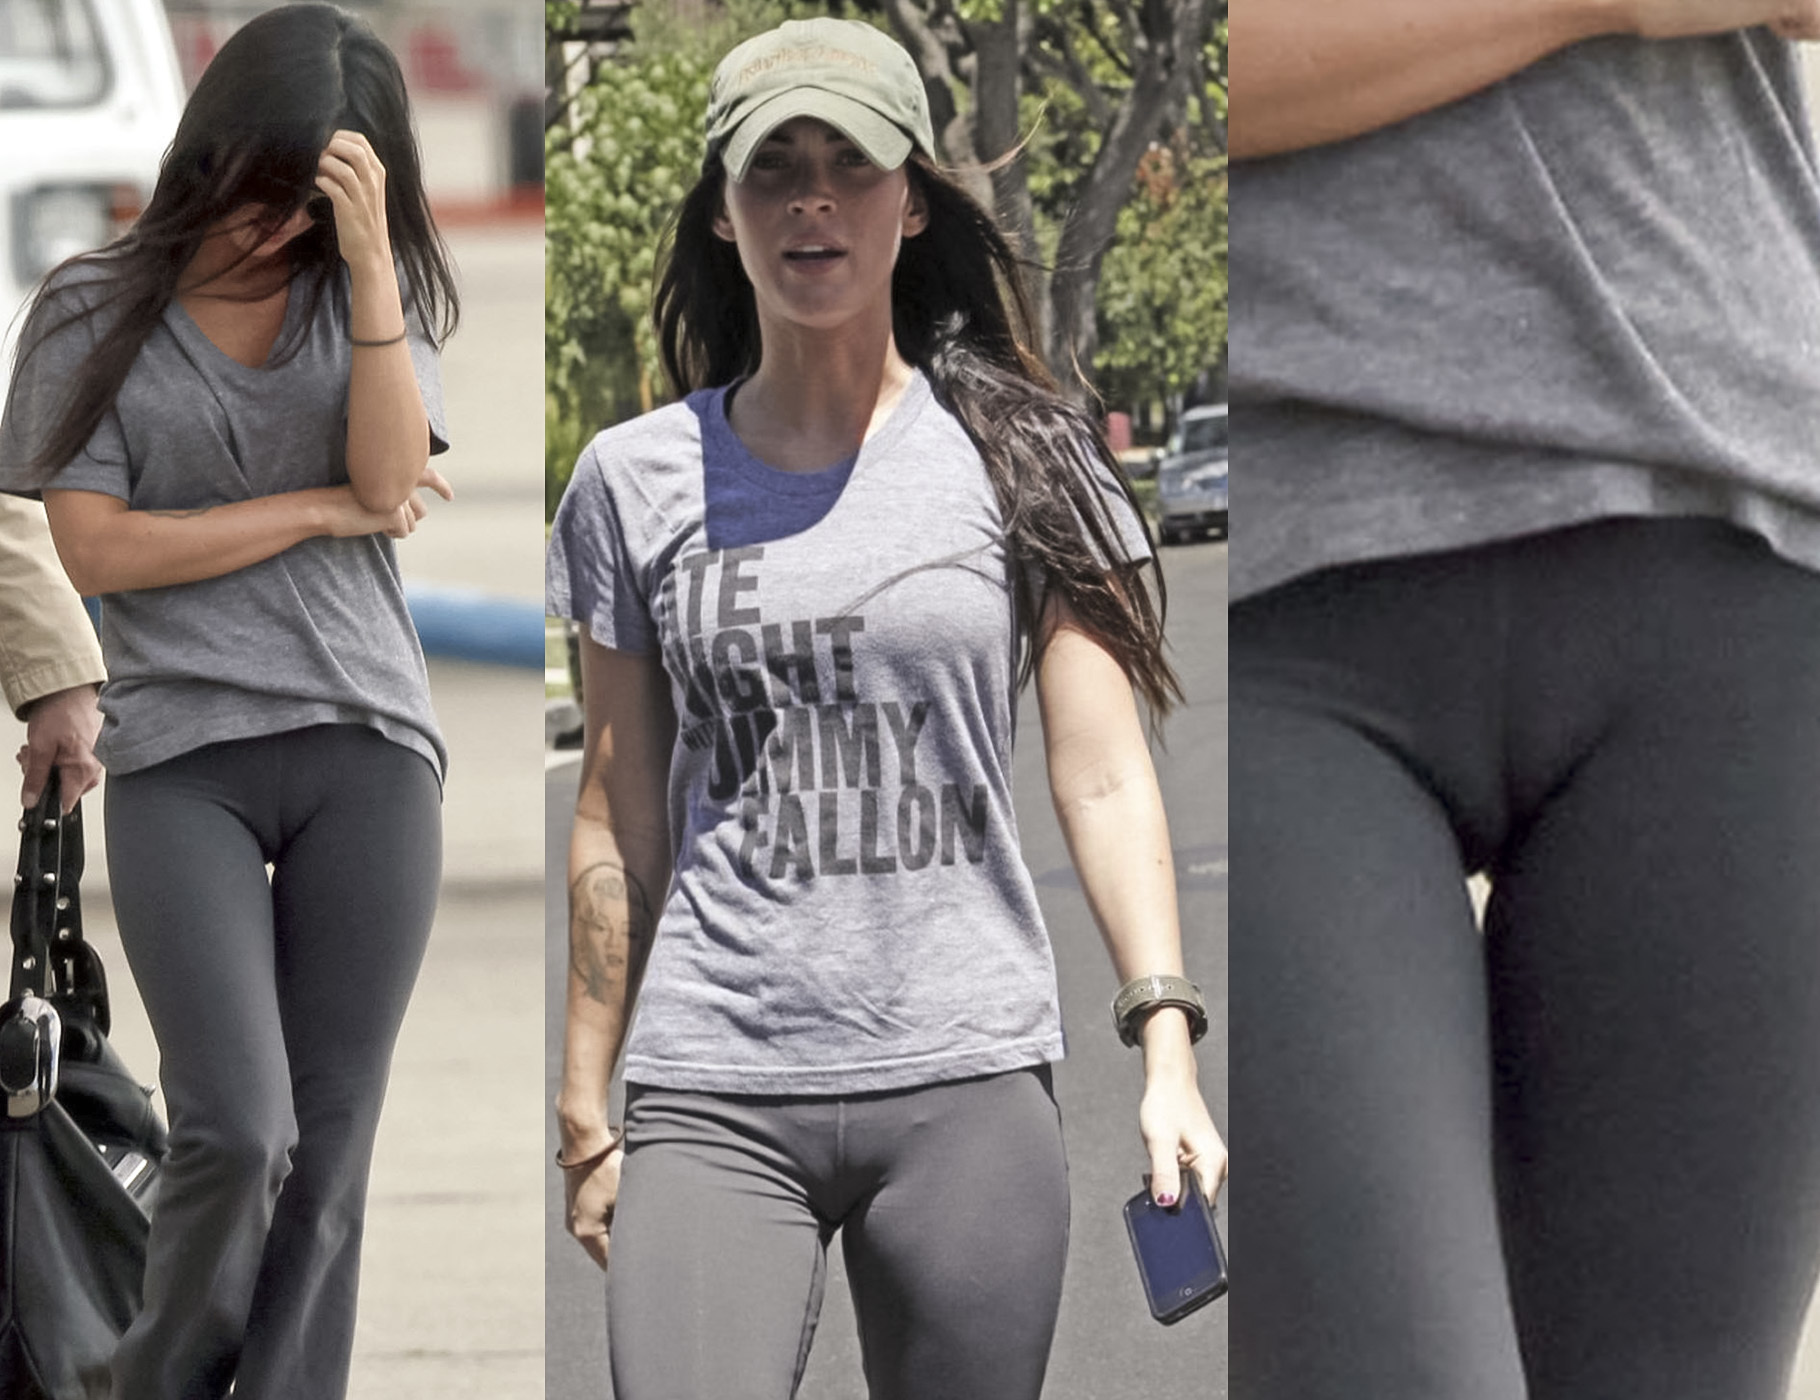 Megan fox reveals breakdown after being sexualized objectified during career